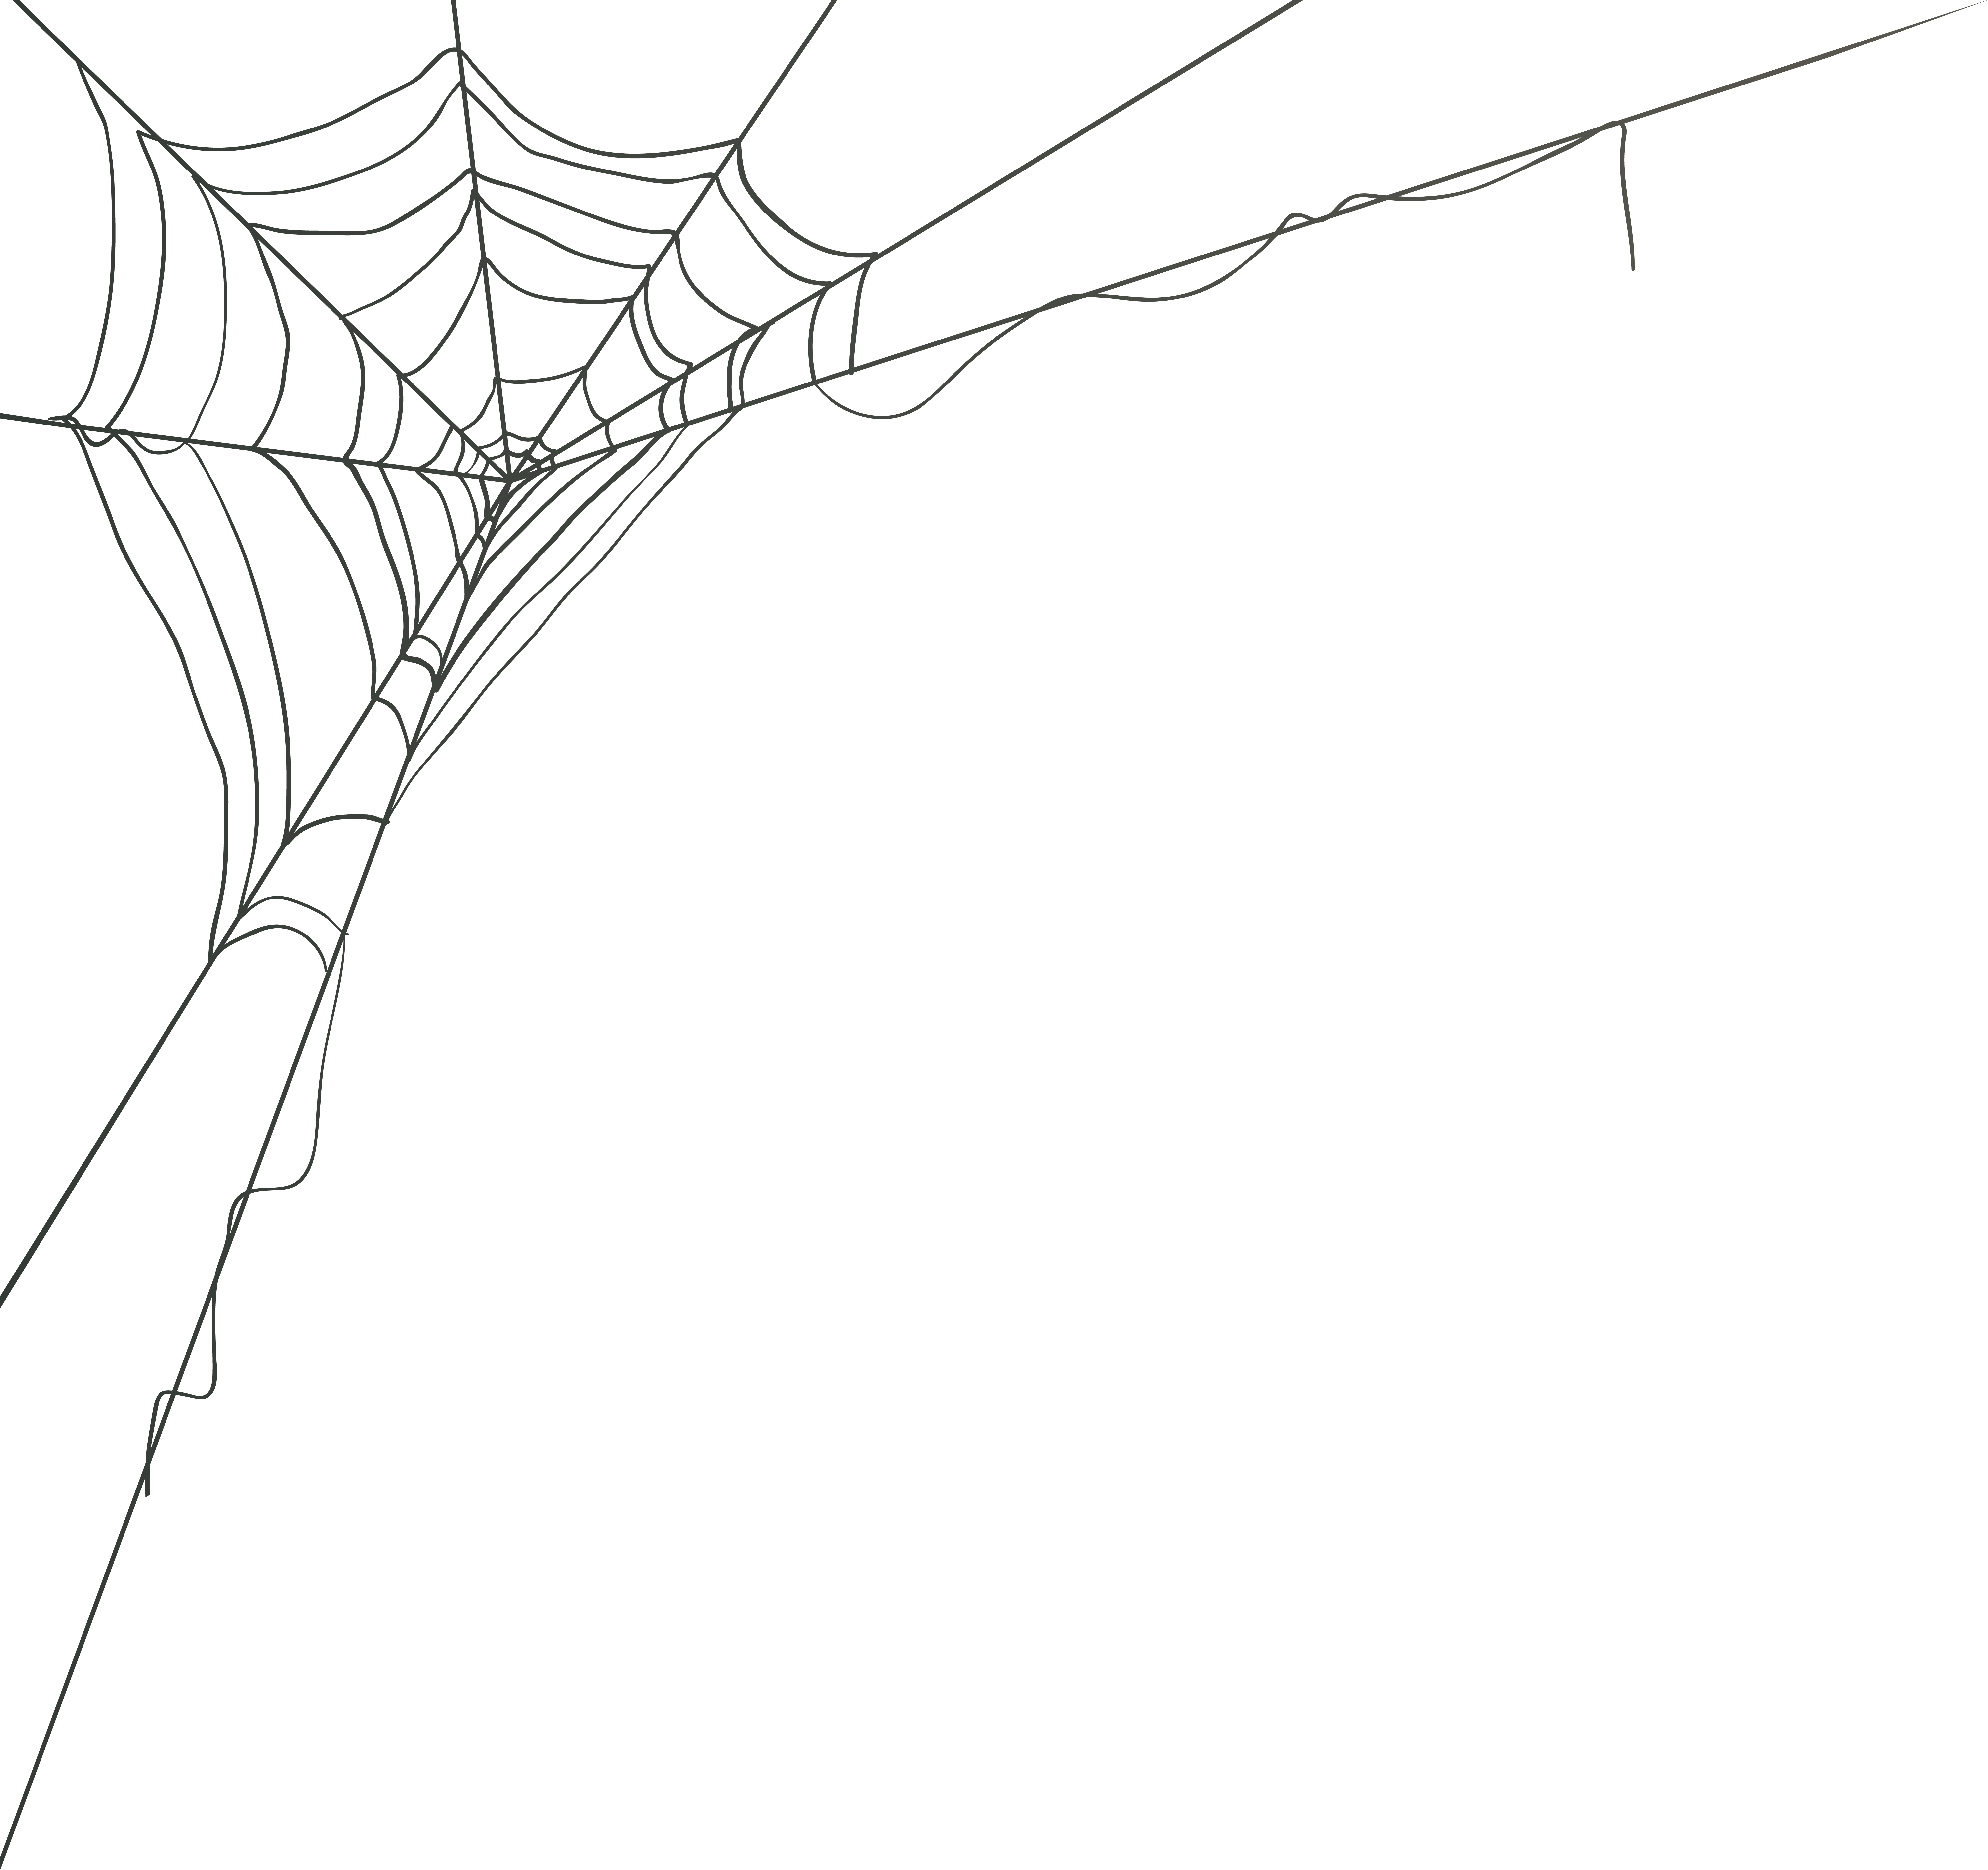 Spider Web Graphics Png Free Spider Web Graphics Png Transparent Images 100732 Pngio